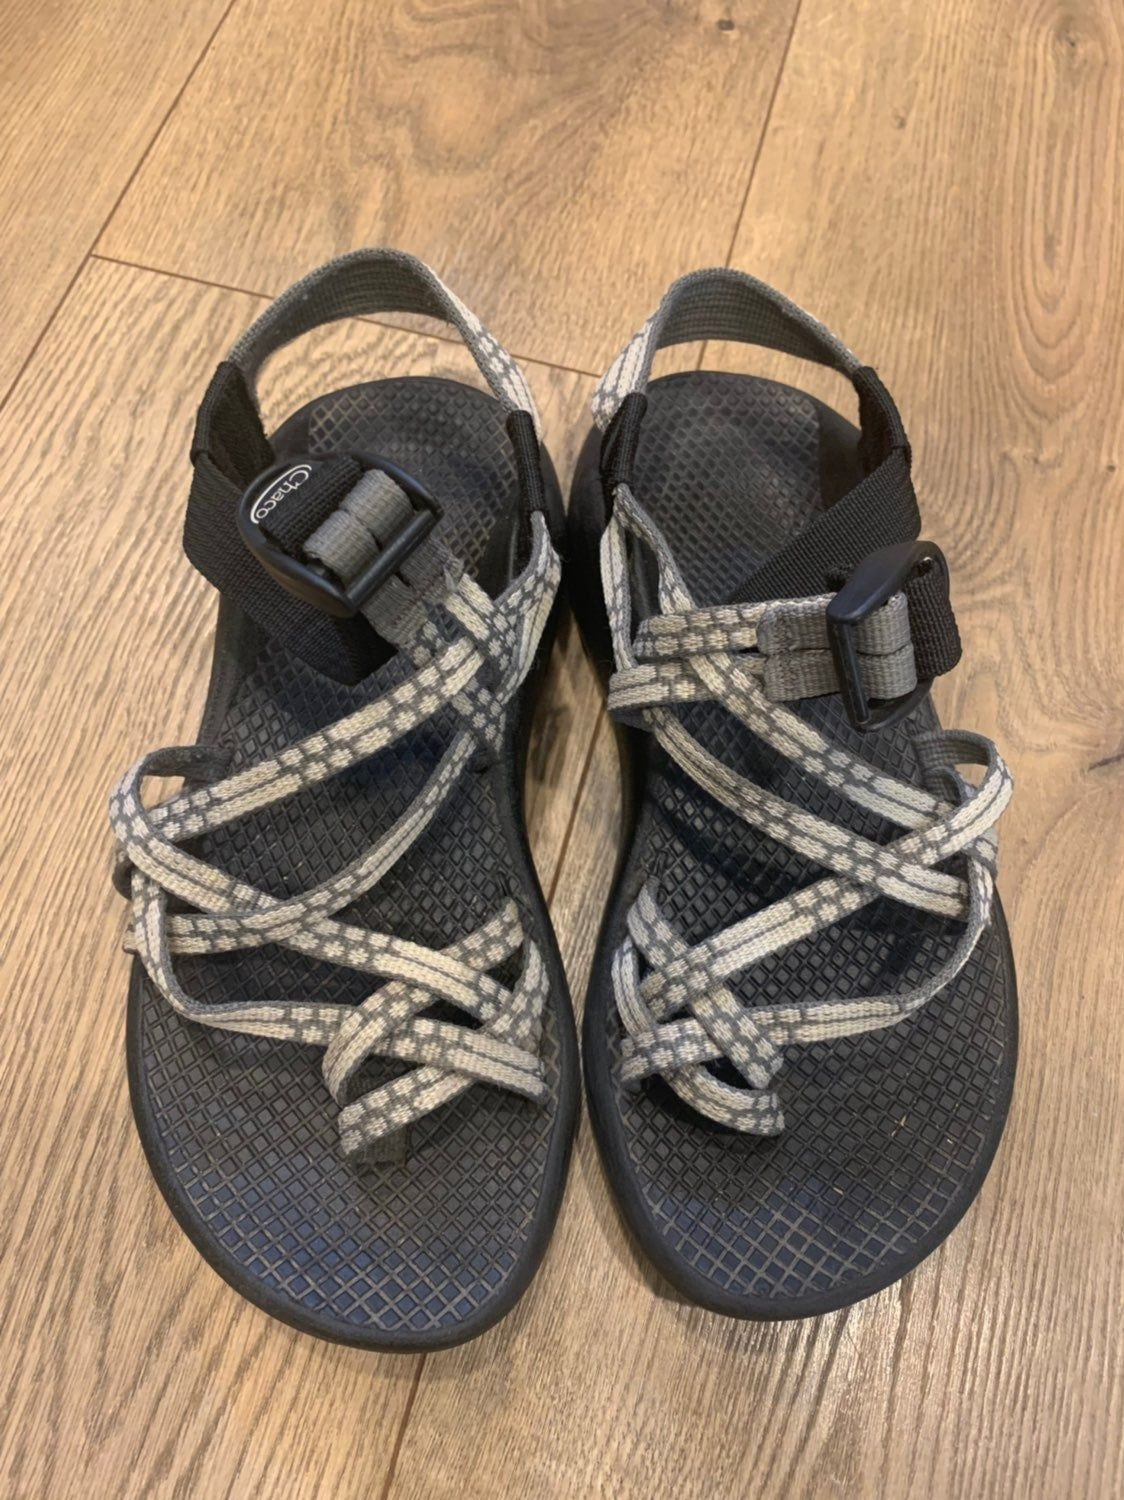 Pin on Chaco Sandals